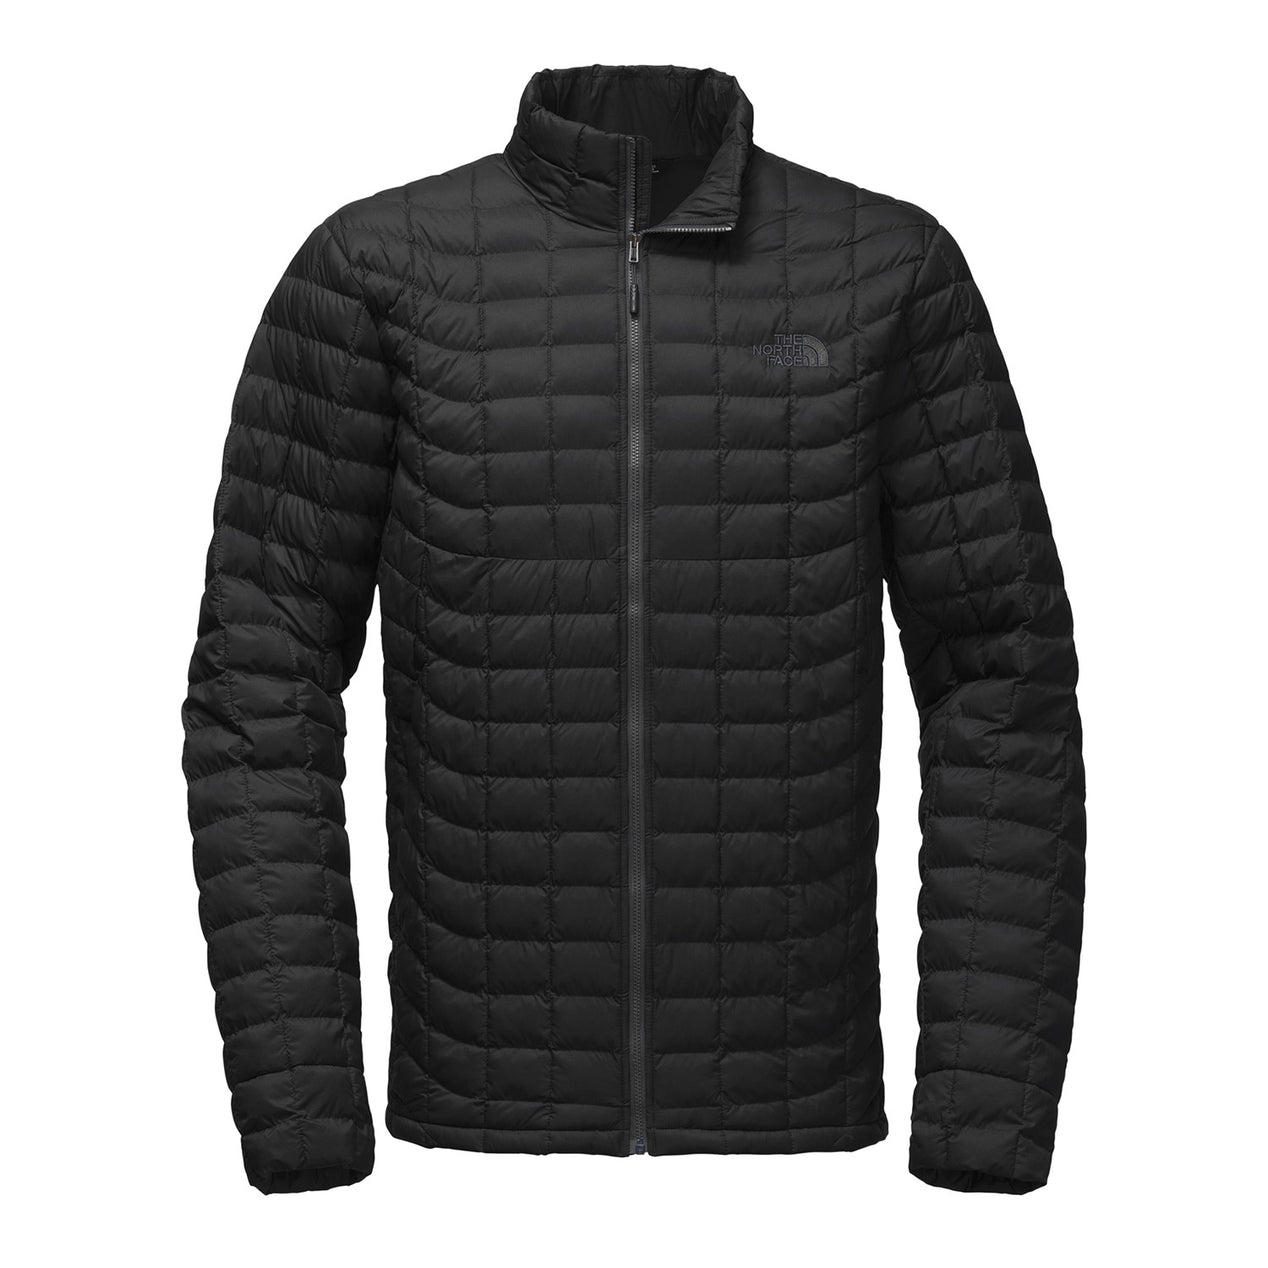 4787d1f5a The North Face Men's ThermoBall™ Jacket - Tall Past Season ...